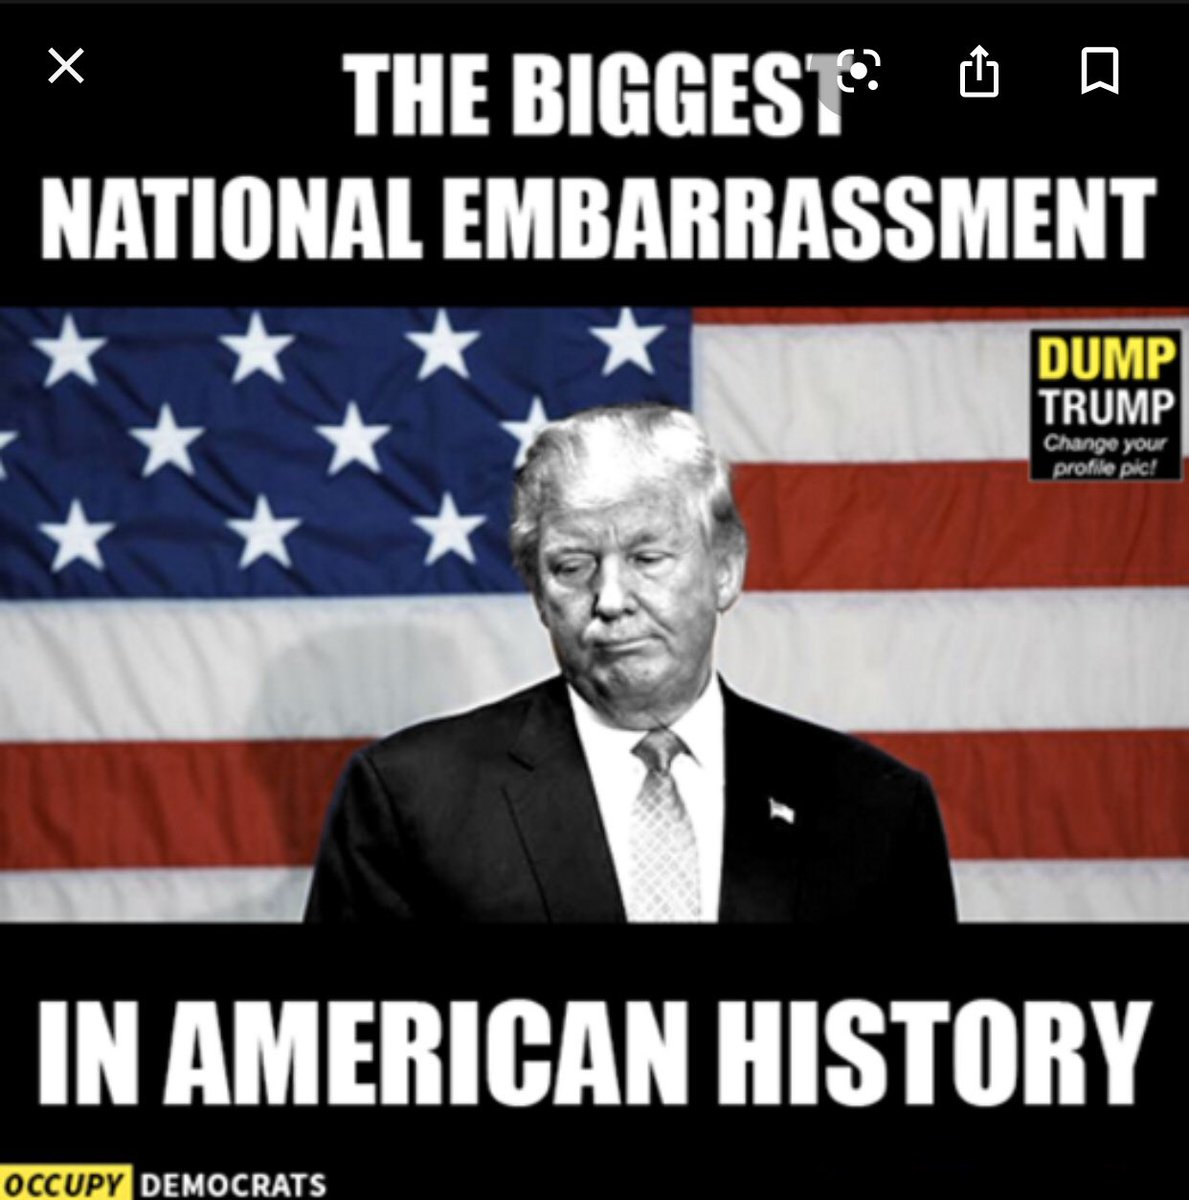 """#MondayMorning #mondaythoughts #MondayMotivaton It's """"AnotherMonday"""" & No one cares to hear abt. Ant-Christ Trump period/ #TrumpIndiaVisit """"Serve the Lord"""" say Evangelicals 4Trump who brag abt. Grabbing Pus*y &Colluding #TrumpInIndia what an Embarrassment👋🏾"""